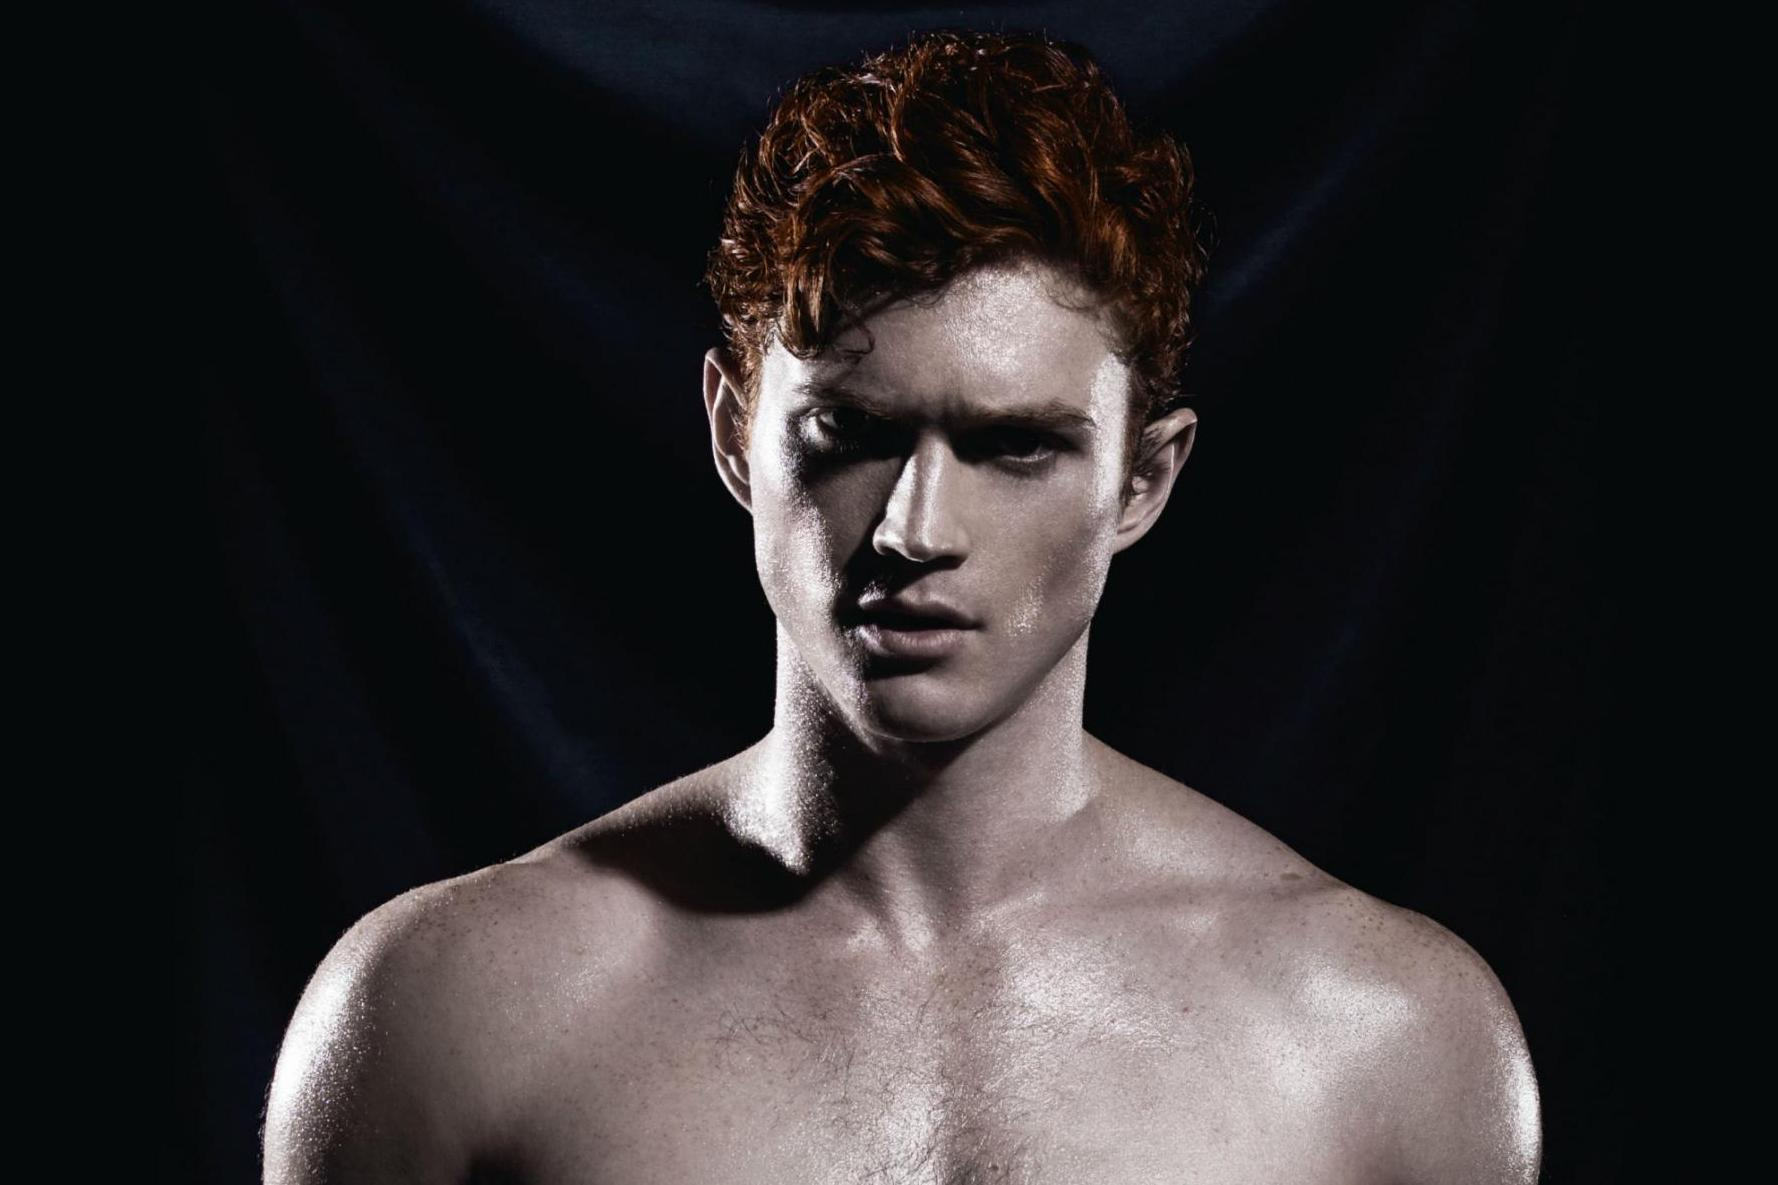 Models Pose Naked In The Calendar Smashing Stereotypes About Ginger Men Indy100